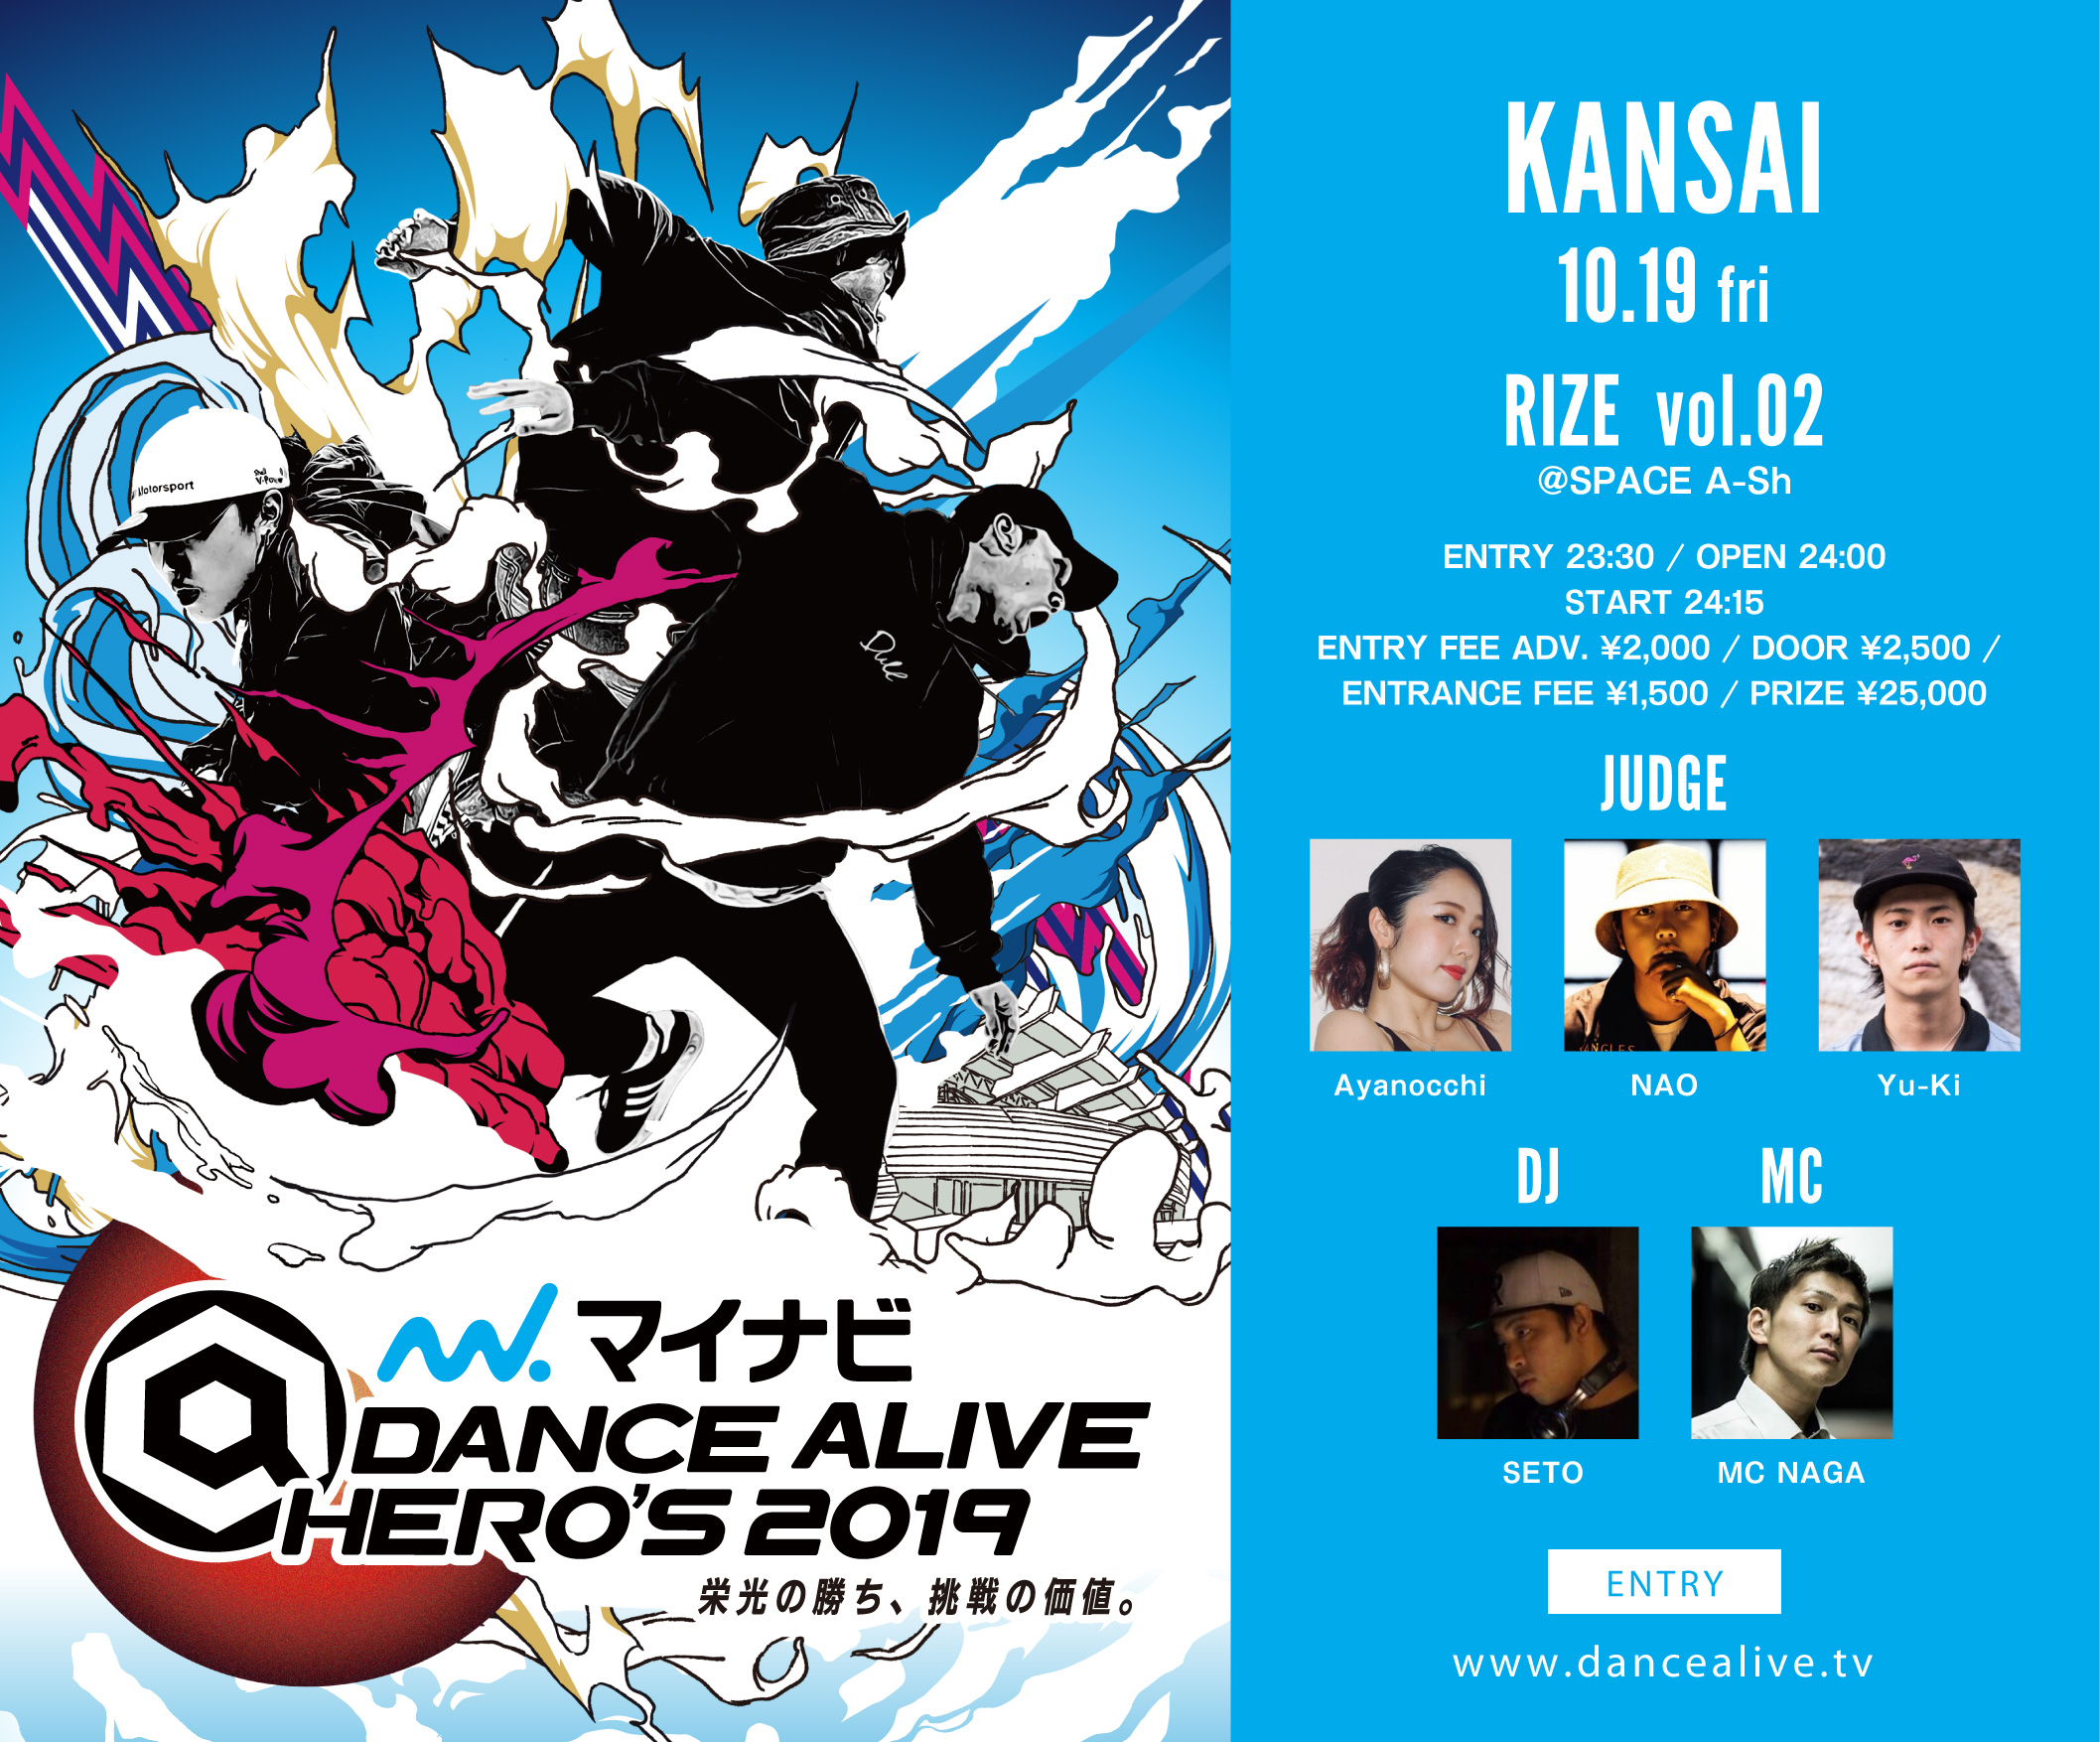 マイナビDANCE ALIVE HERO'S 2019 RIZE KANSAI VOL.2